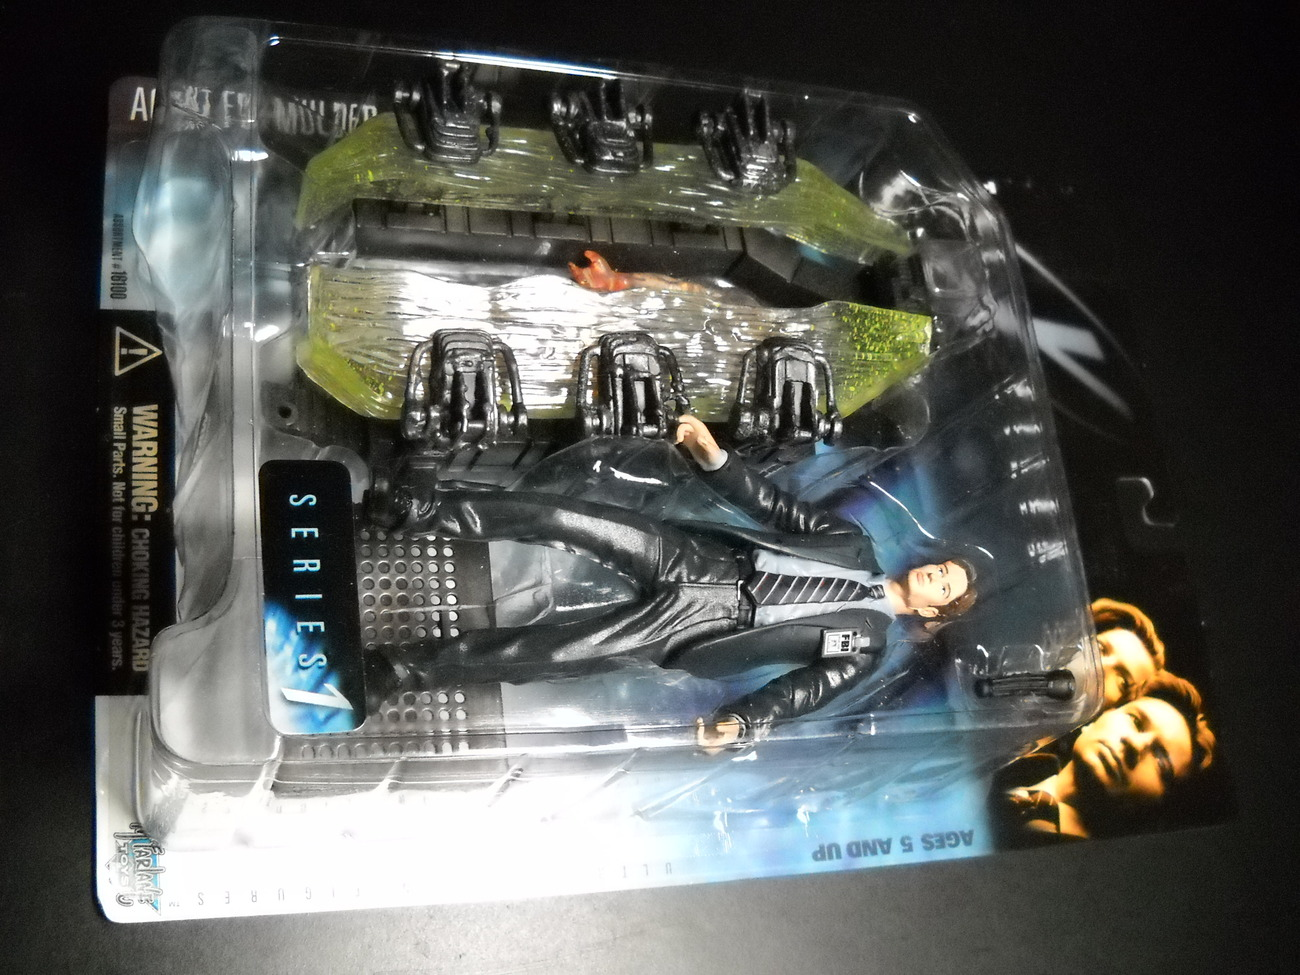 Toy x files mcfarlane 1998 series one agent fox mulder and pod chamber moc 01